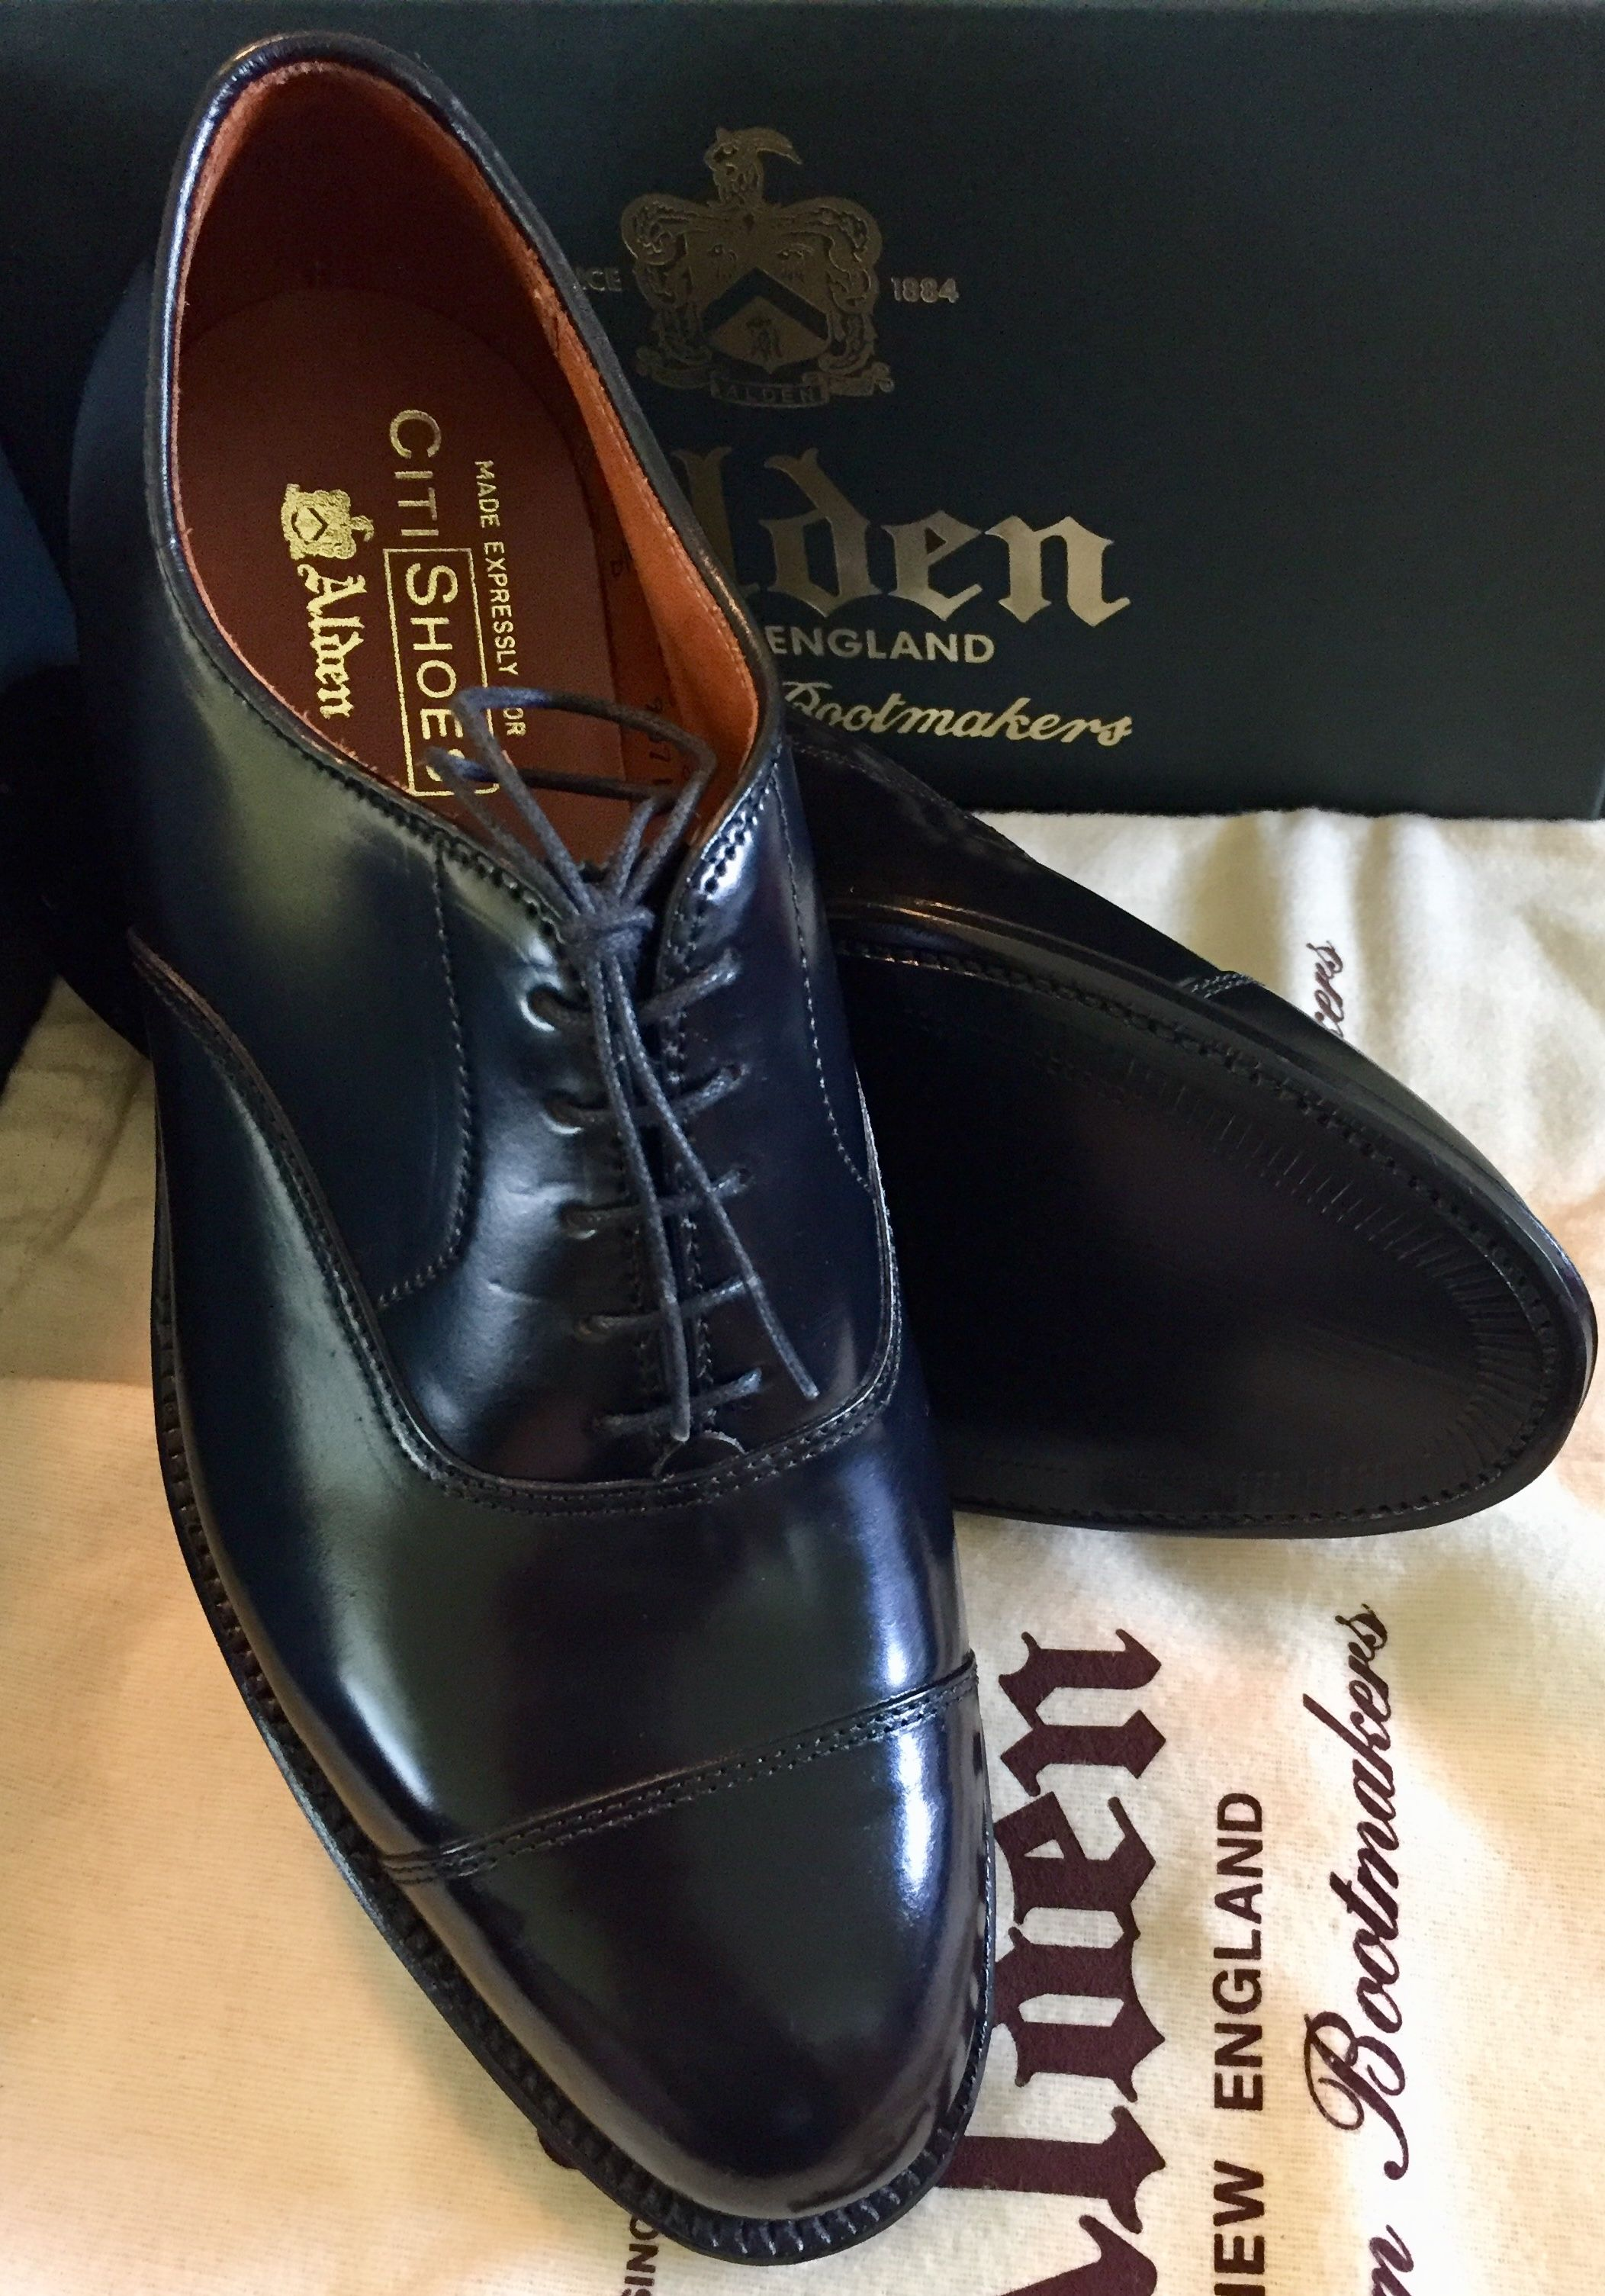 4a11c5e48a3 Alden x CitiShoes 9071 Cap Toe Balmoral Oxford in Genuine Horween Black  Shell Cordovan with Single Leather Soles and Dove Tail Leather Heels Made  In USA ...